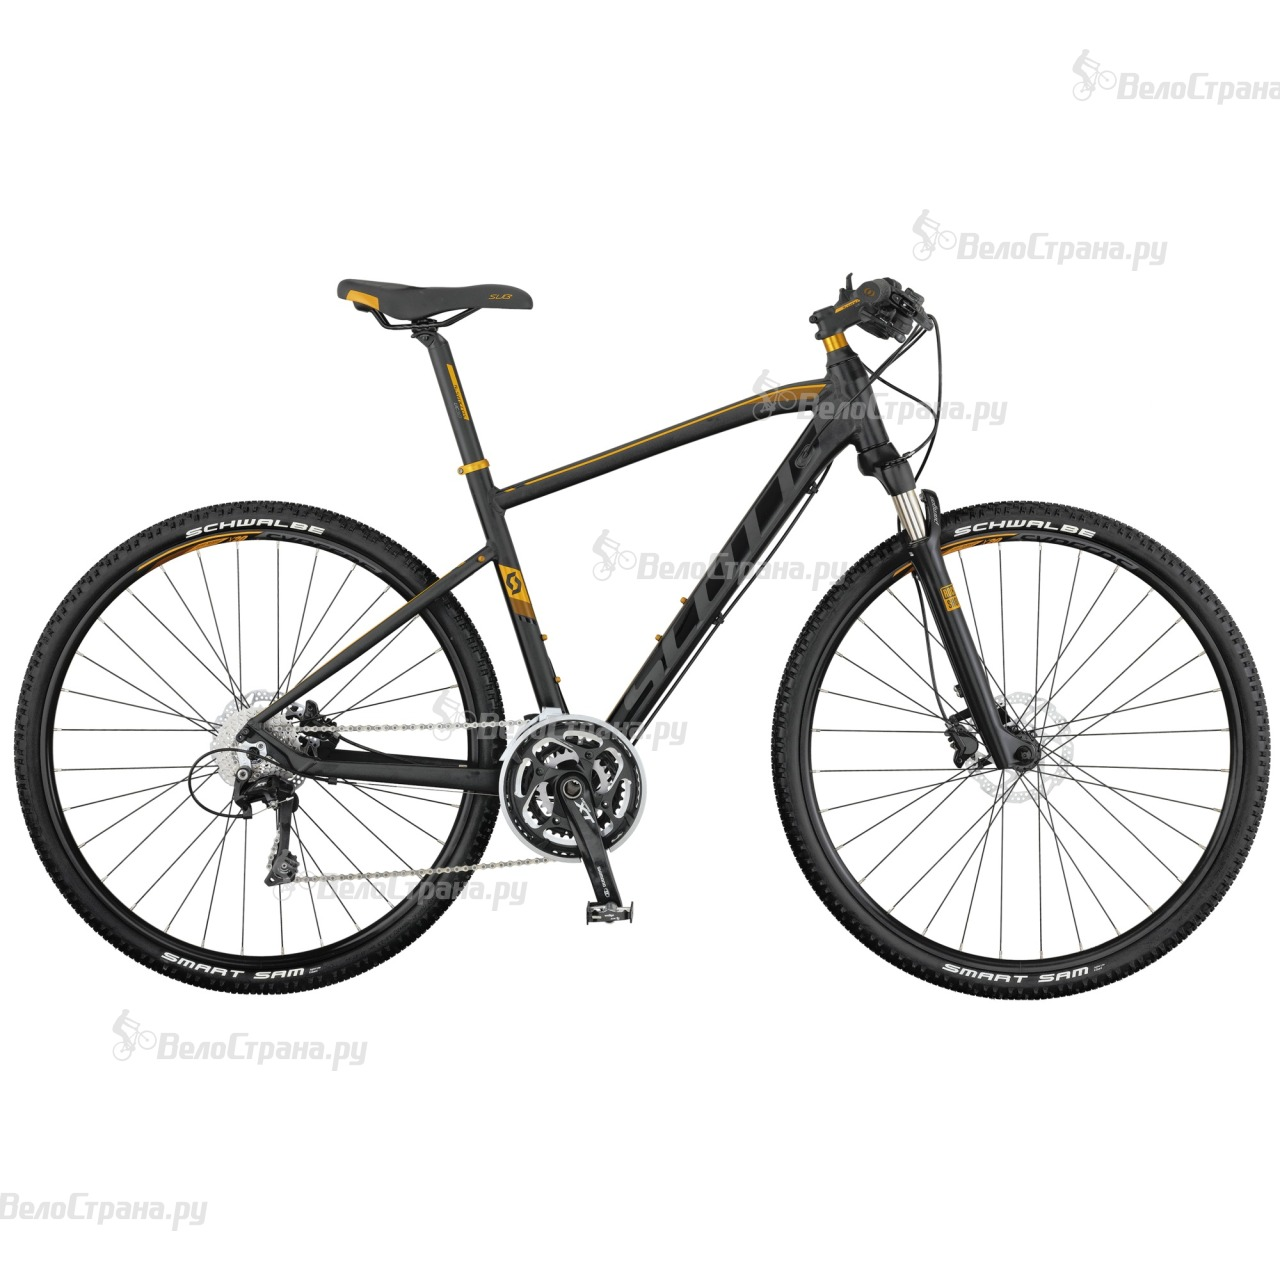 Велосипед Scott Sub Cross 10 (2017) specialized expedition sport low entry 2014